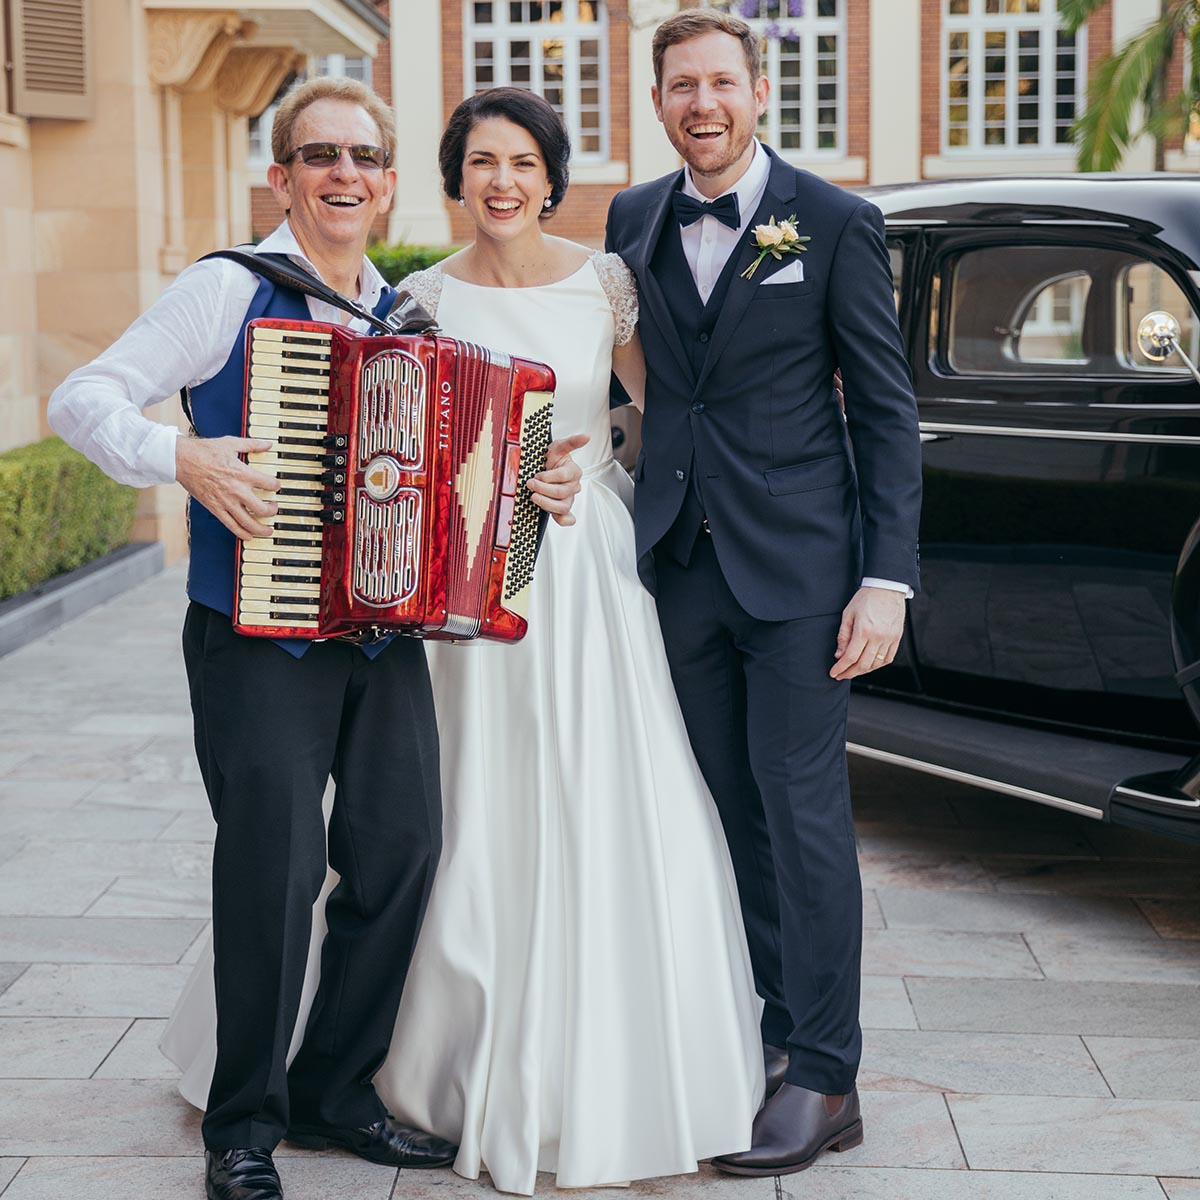 wedding music reception for french italian and themed special occasions